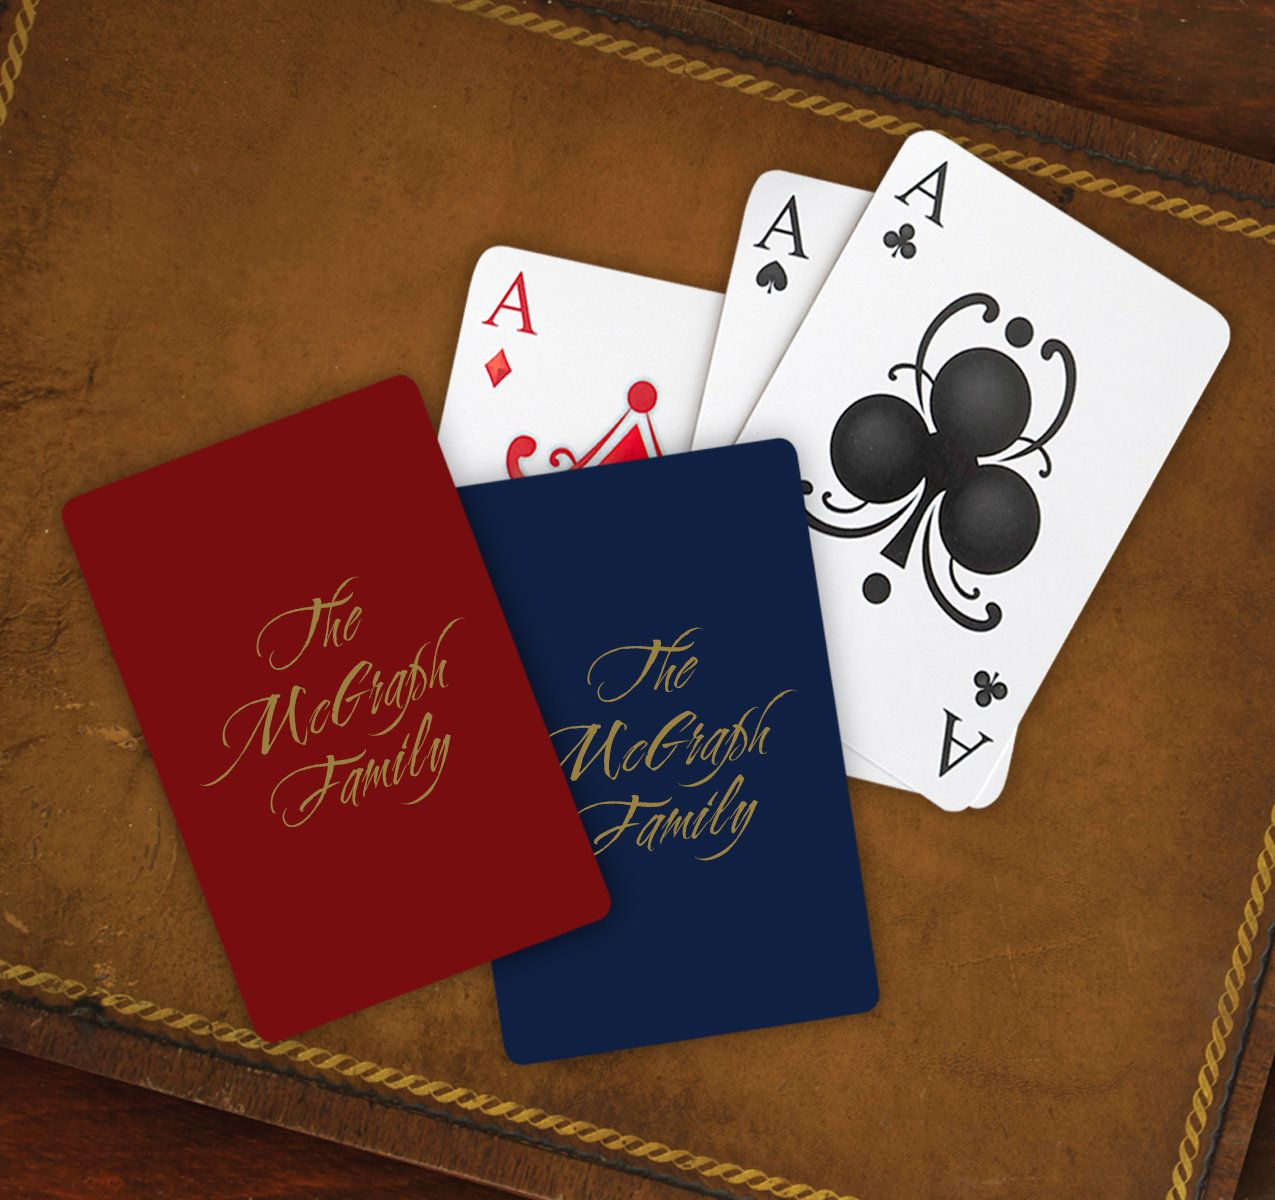 Set of 2 Personalized Playing Cards, Name or Monogram Game